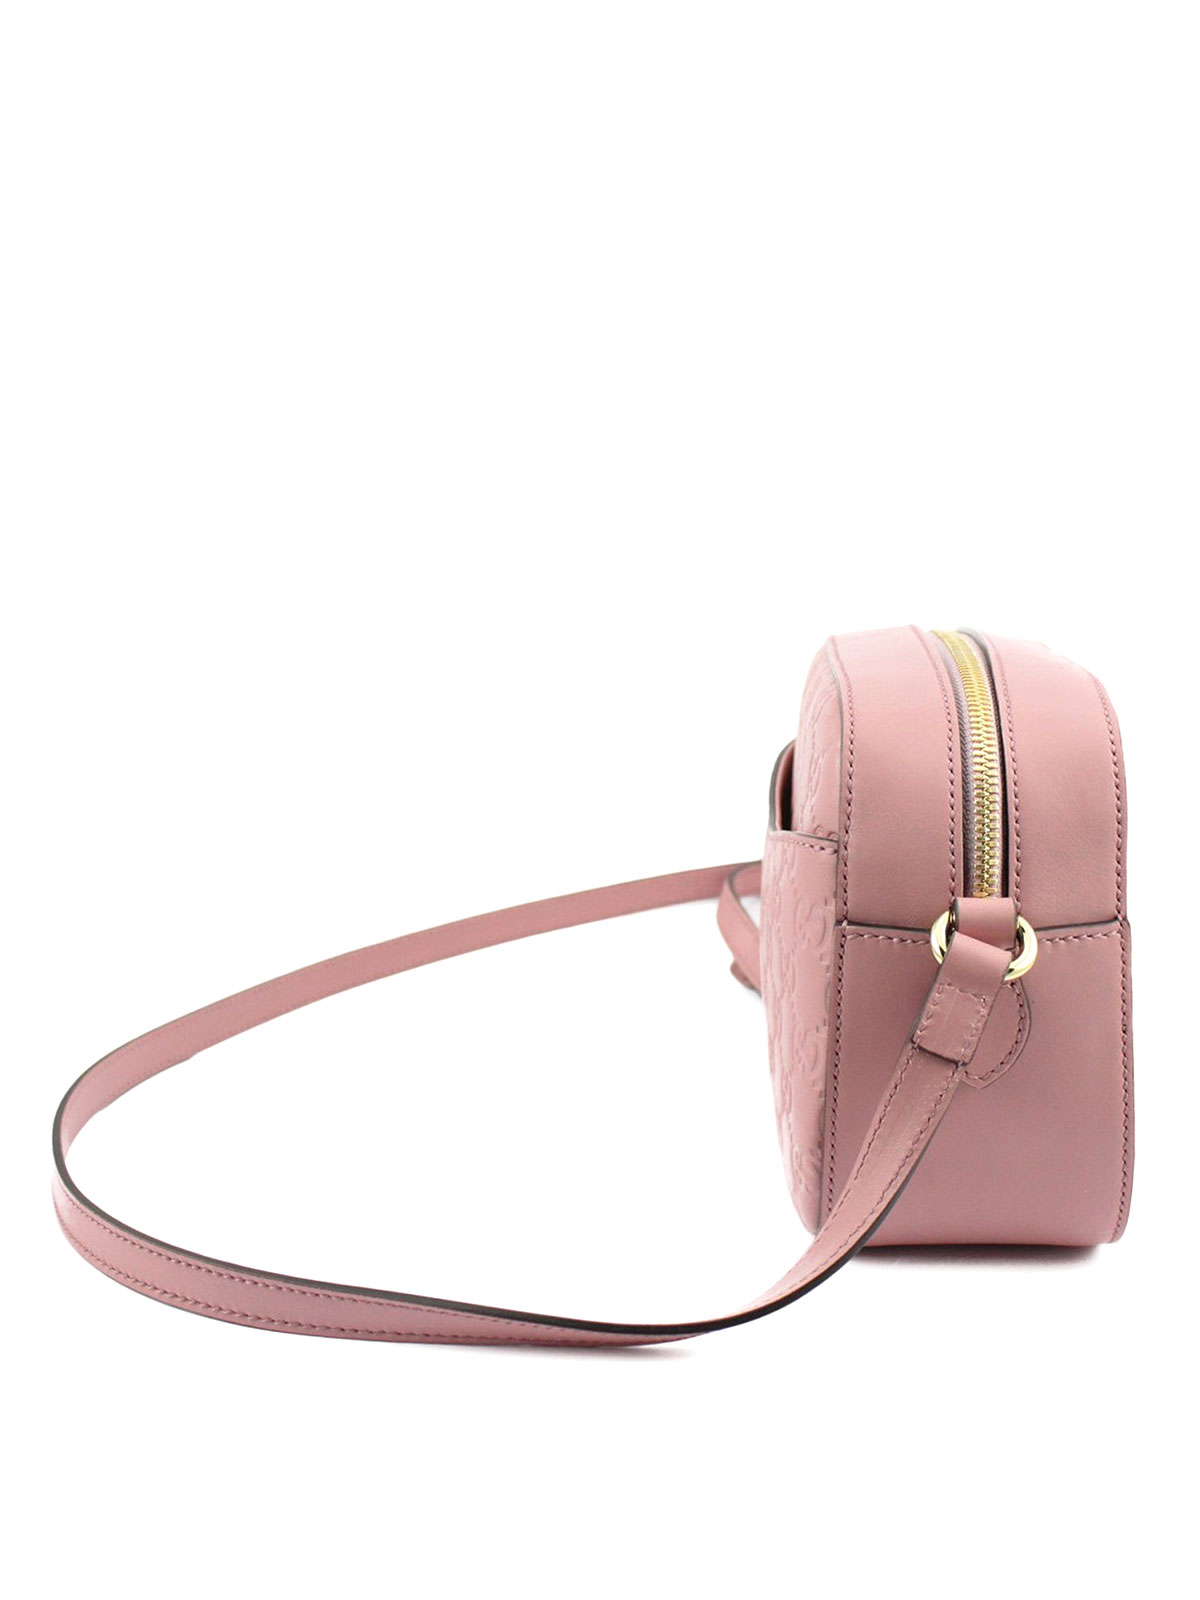 48dca6682805 Gucci Signature Leather Crossbody Bag. Signature leather crossbody bag by  Gucci - cross body bags | Shop online ...